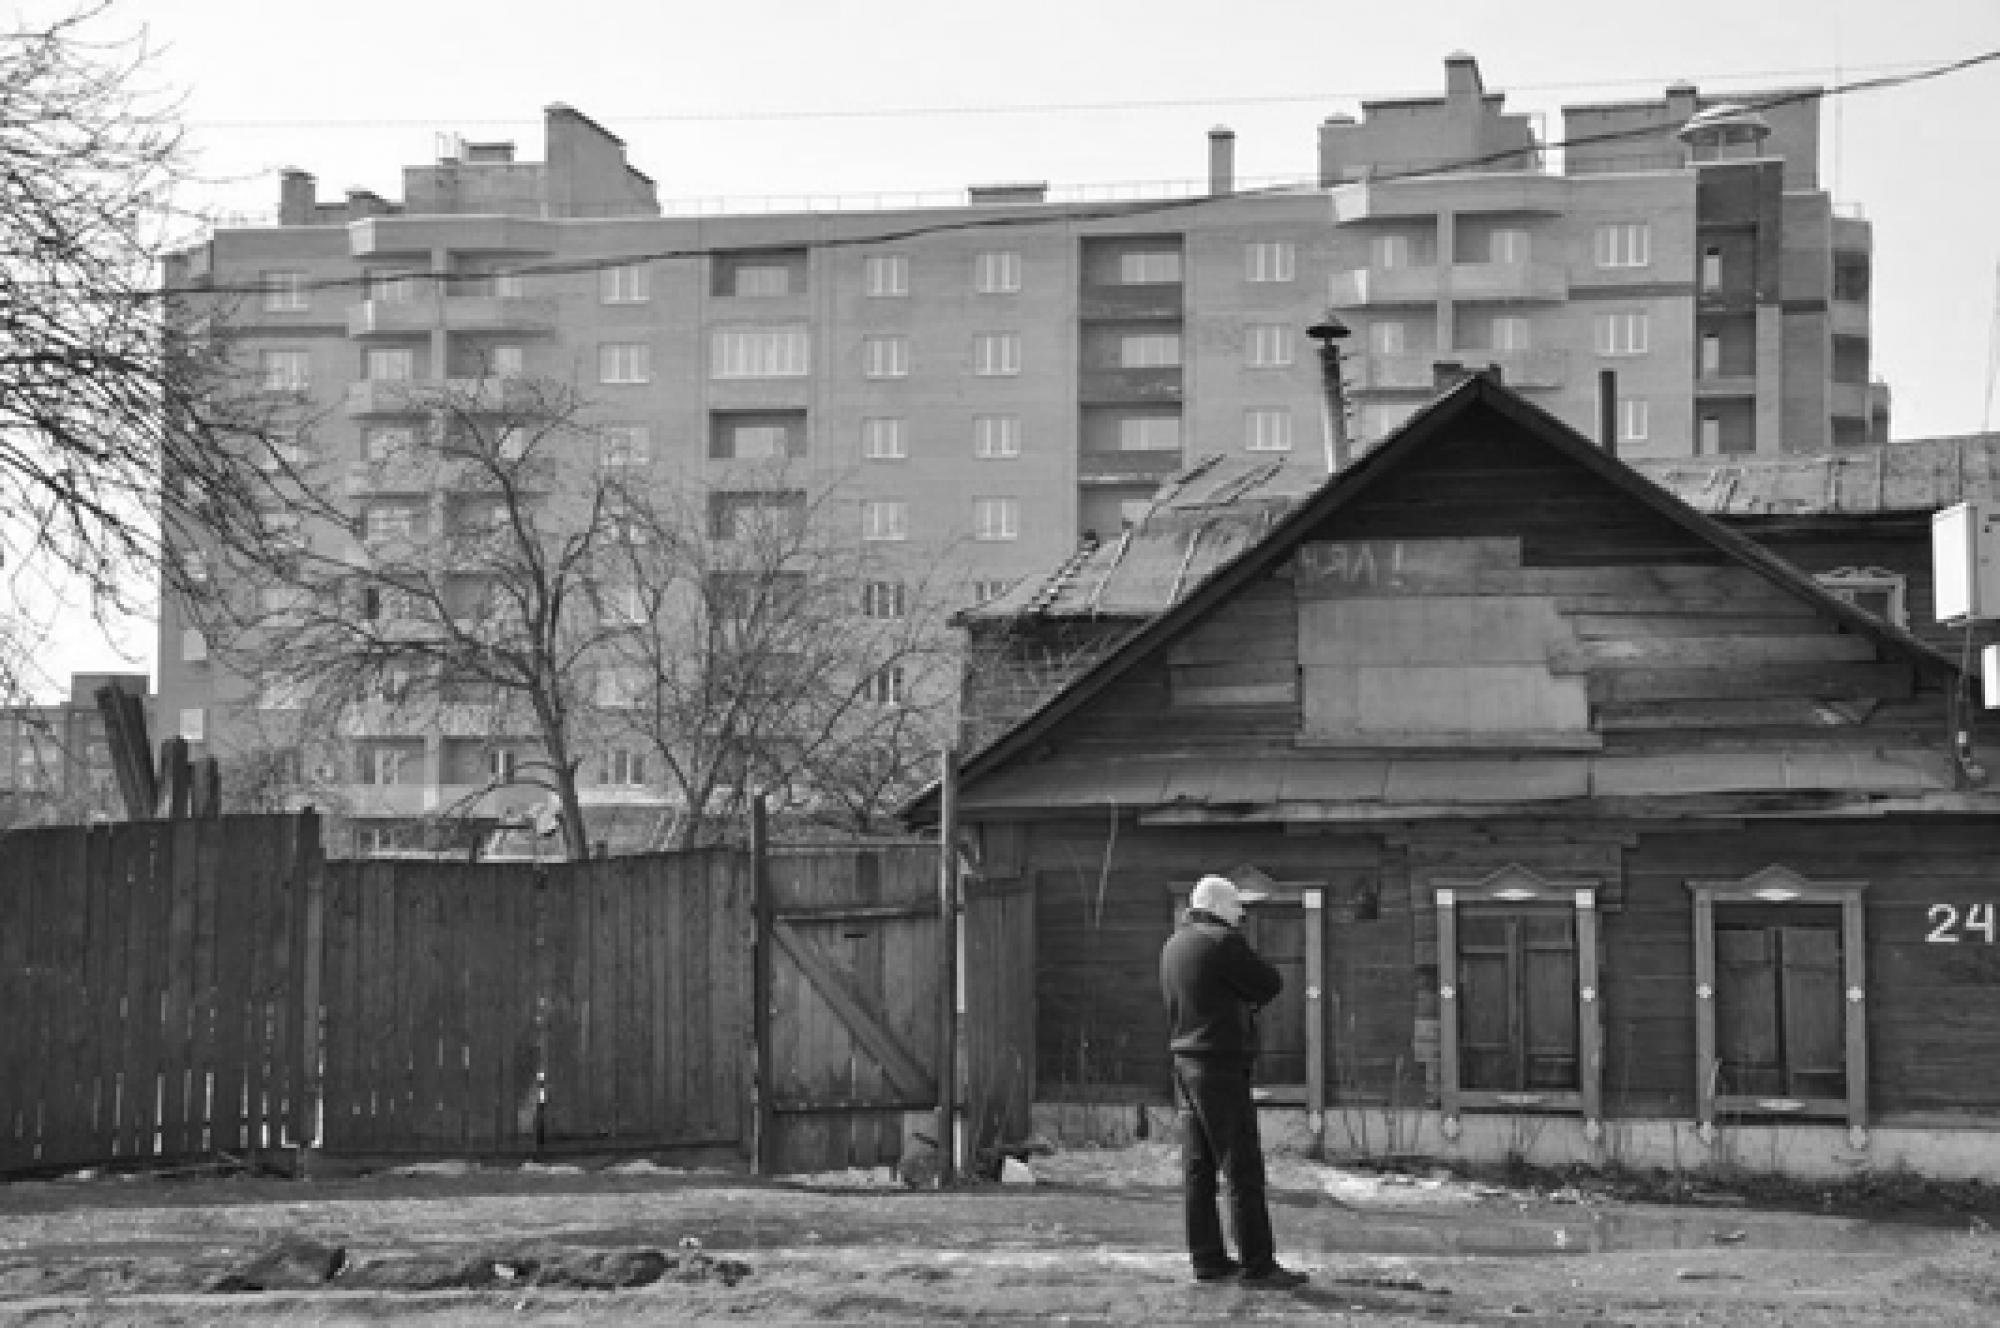 A post-Soviet-era apartment complex looms behind a house that probably predates the 1917 Russian Revolution.